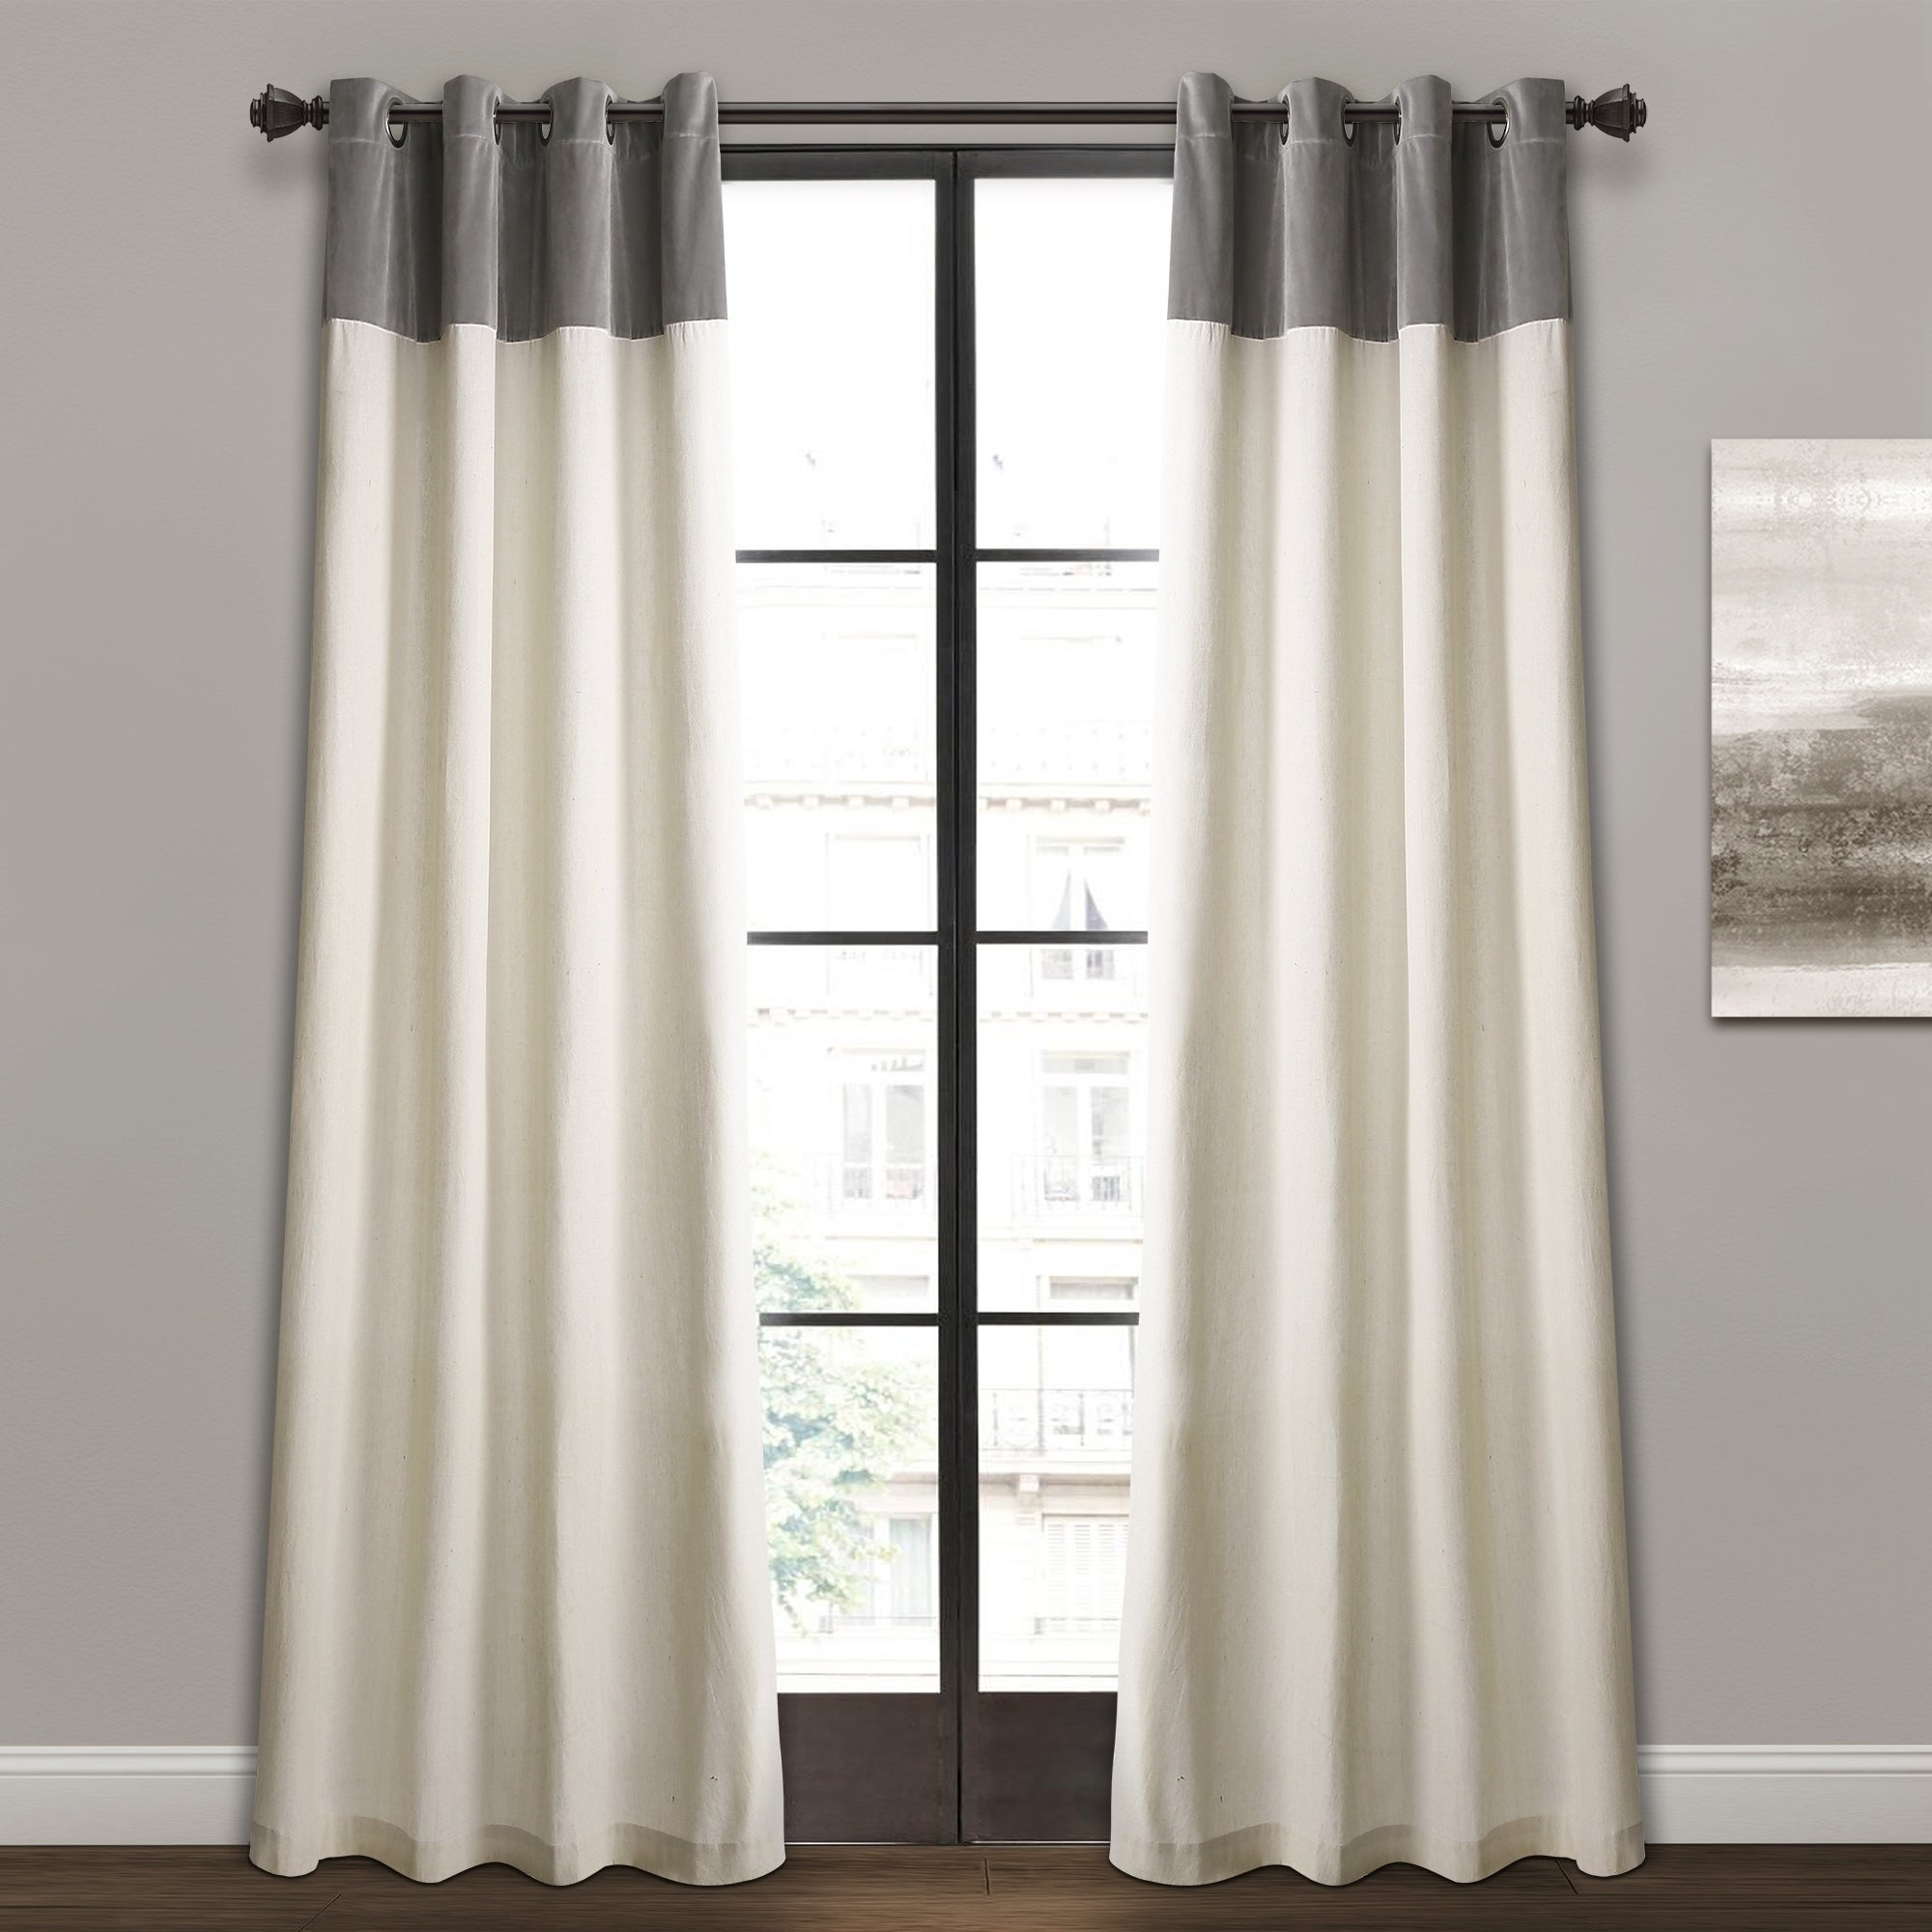 Details About Lush Decor Milo Linen Window Curtain Panel Pair In Pairs To Go Victoria Voile Curtain Panel Pairs (View 17 of 20)